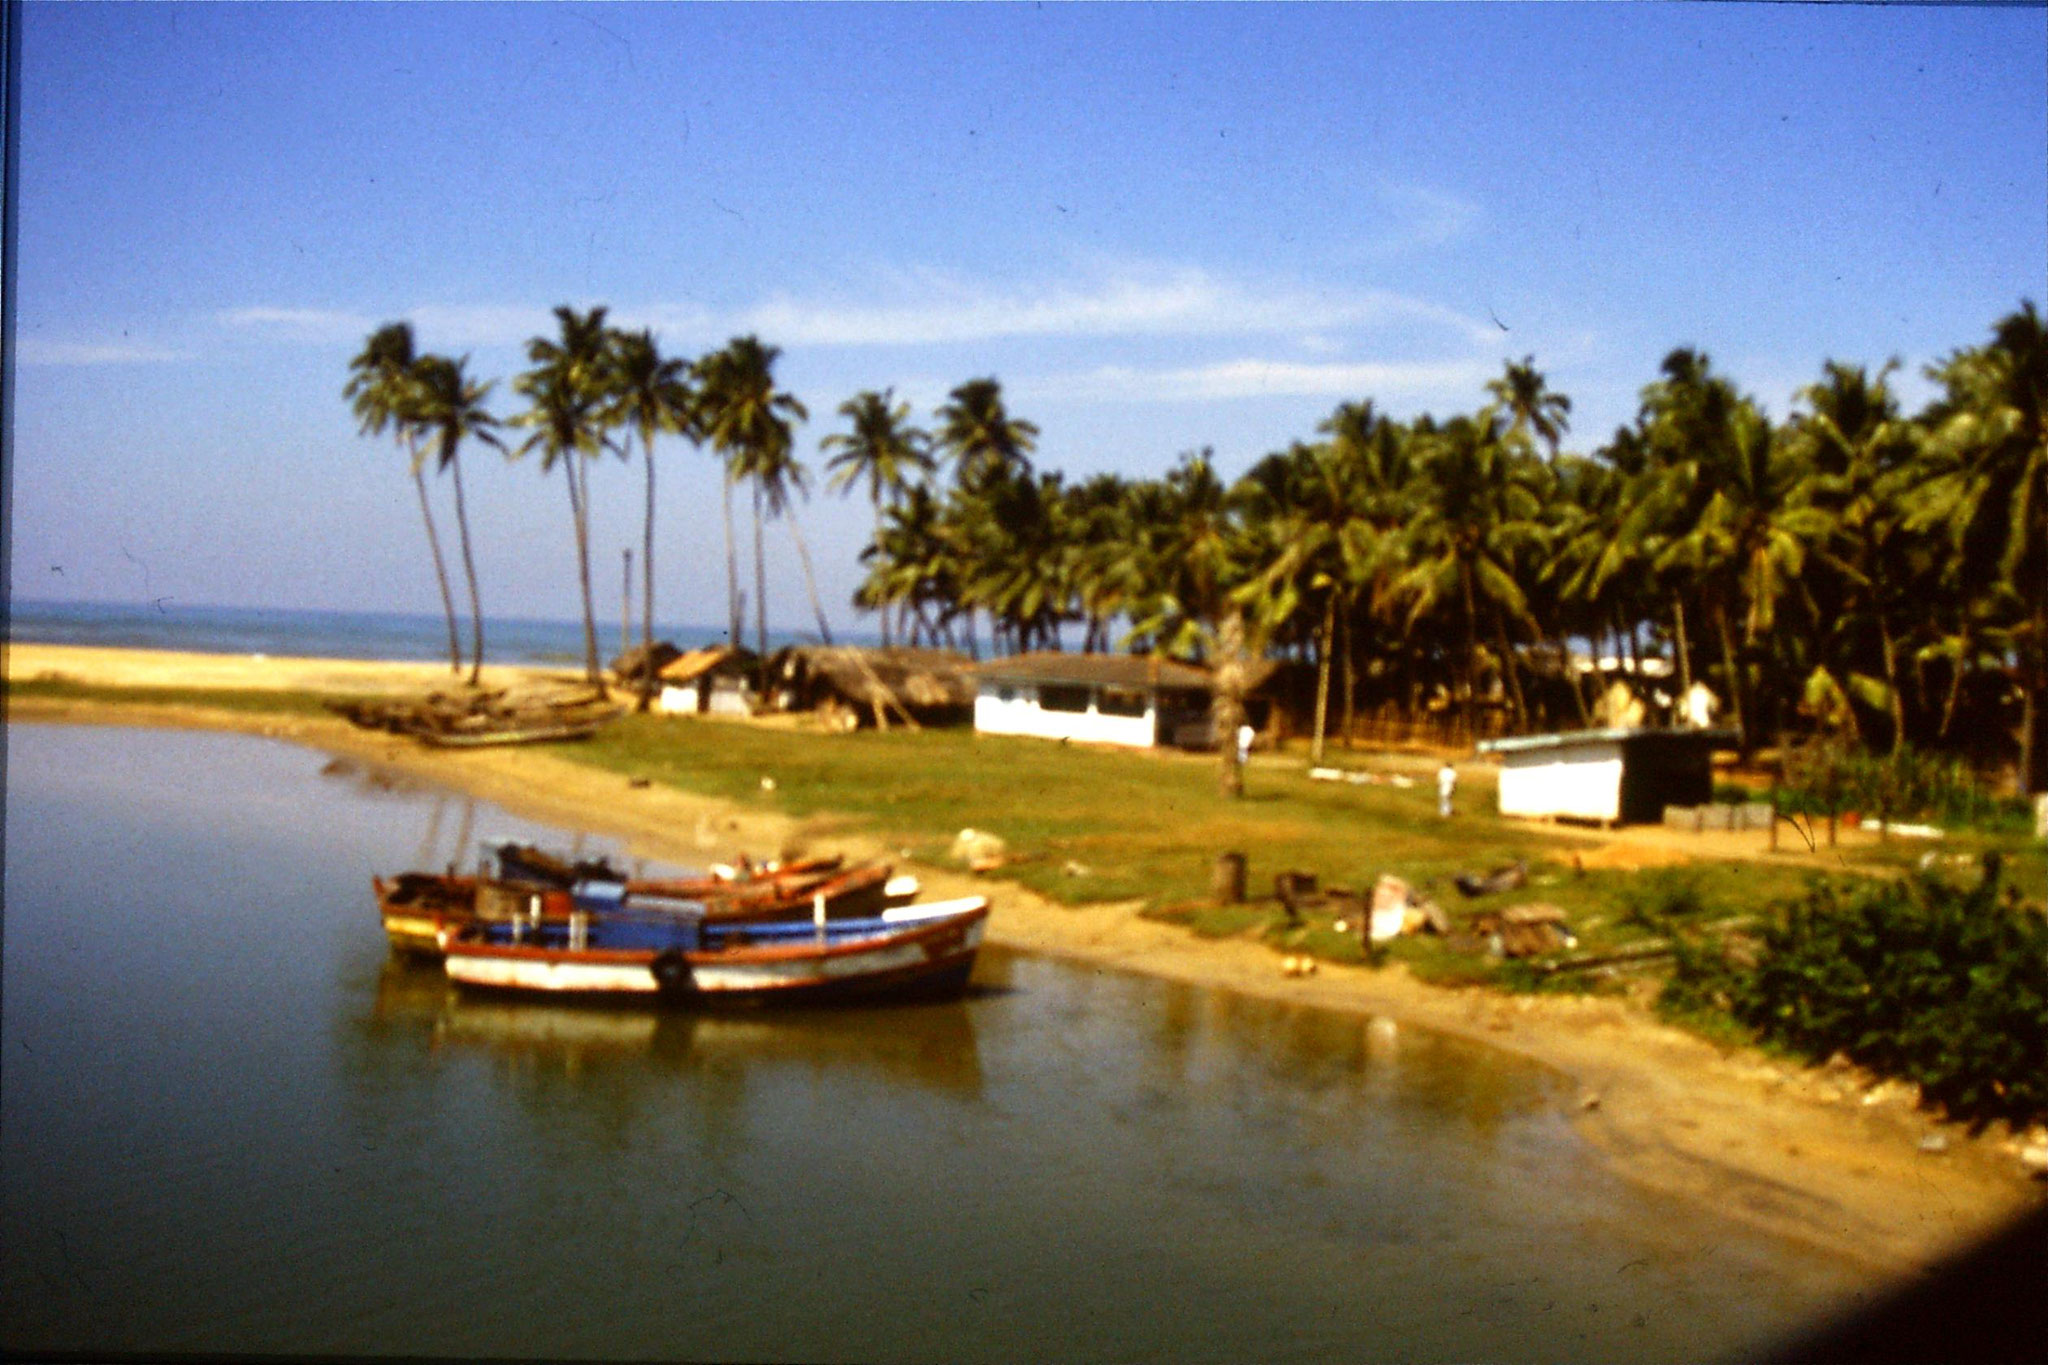 24/1/1990: 29: coast south of Colombo